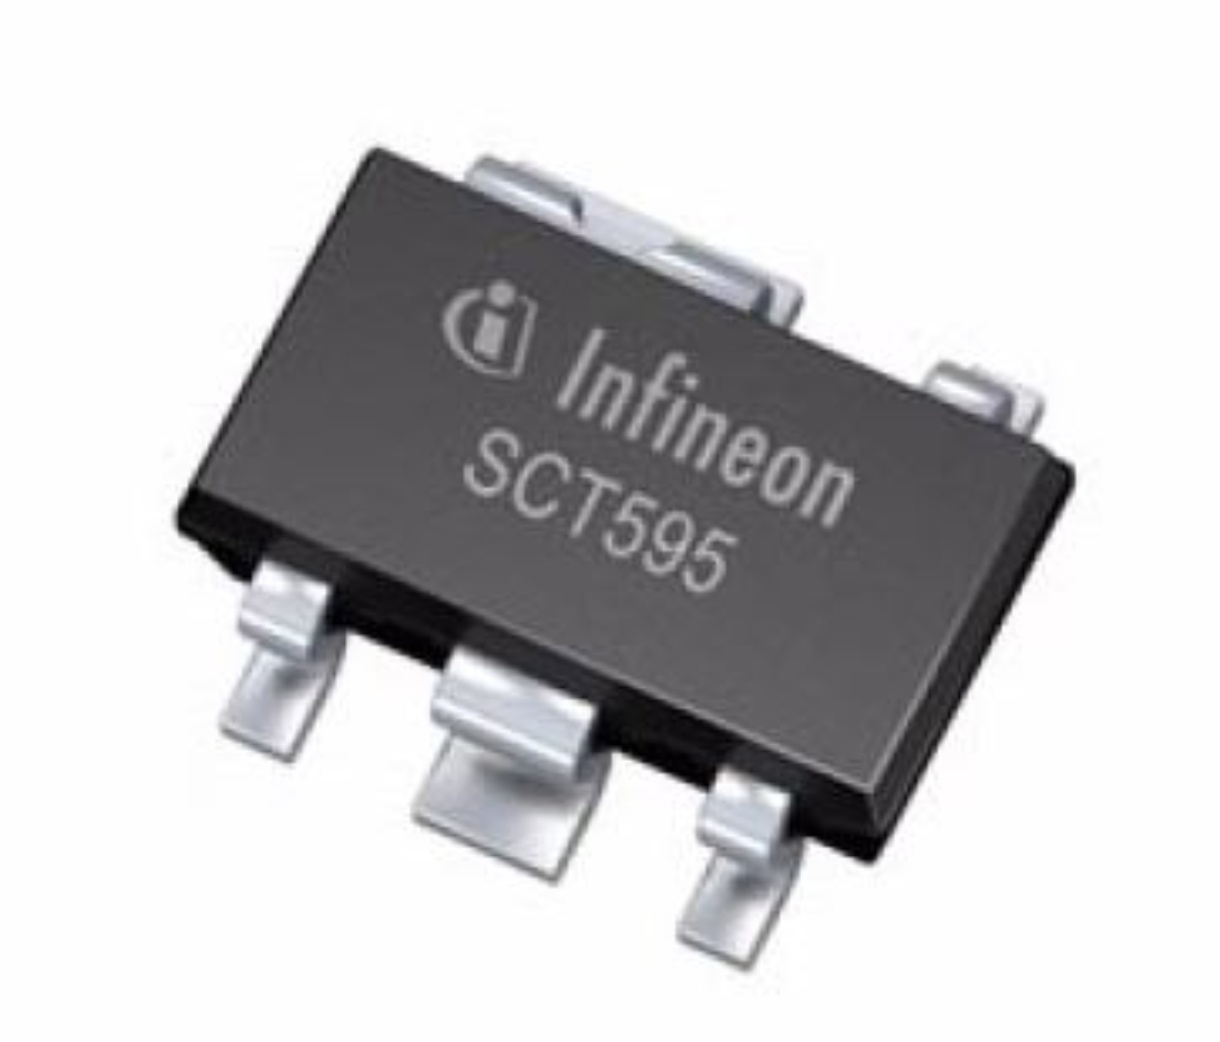 Tls202b1mbv33 Infineon Technologies Family Op Amp Series Amplifier Type General Purpose Number Of Circuits Overview